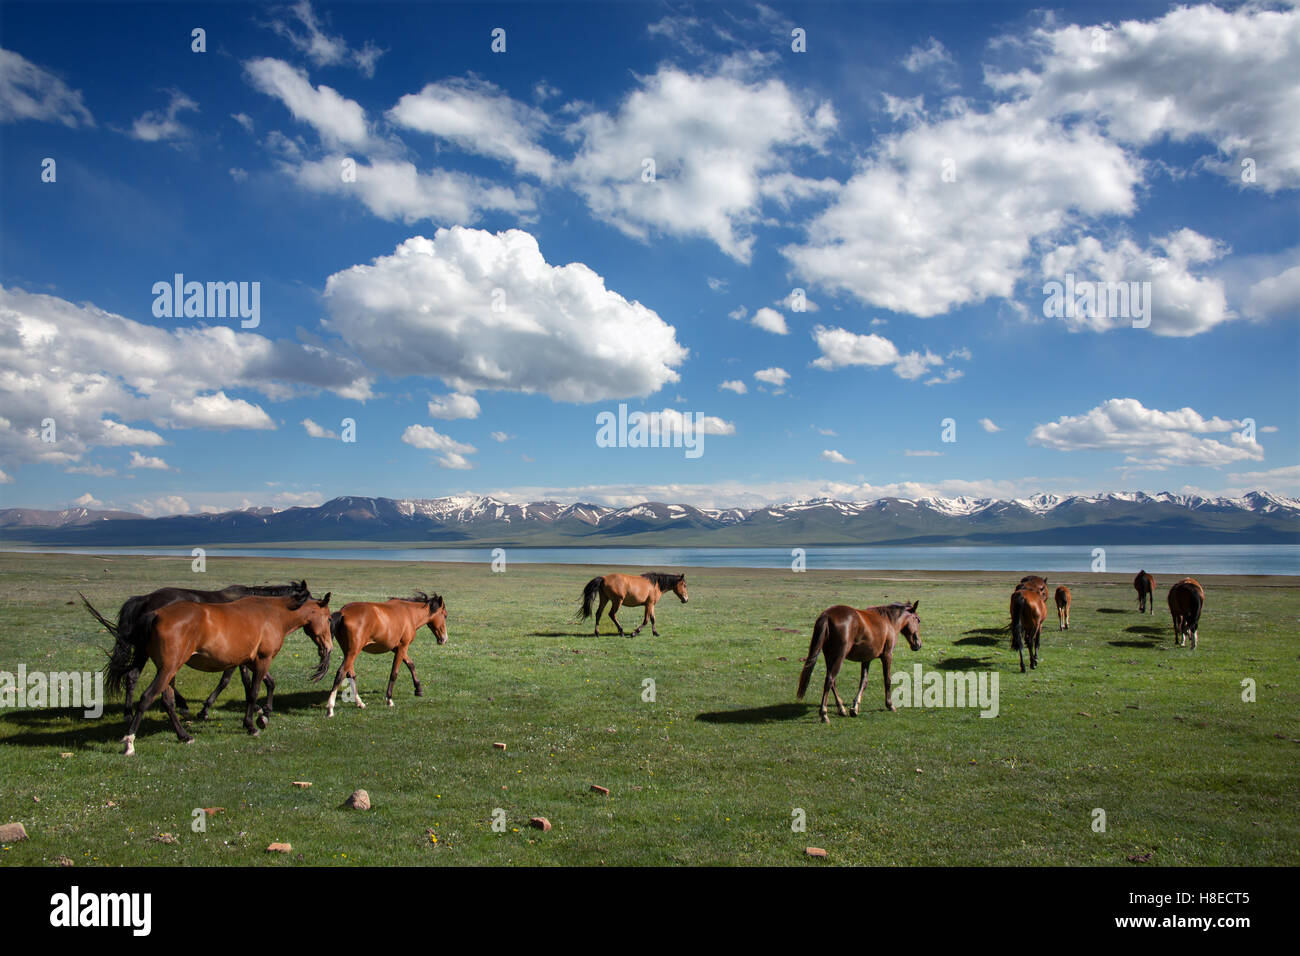 Kyrgyzstan - Horses at Song Kol lake -  Travel people Central Asia - Stock Image